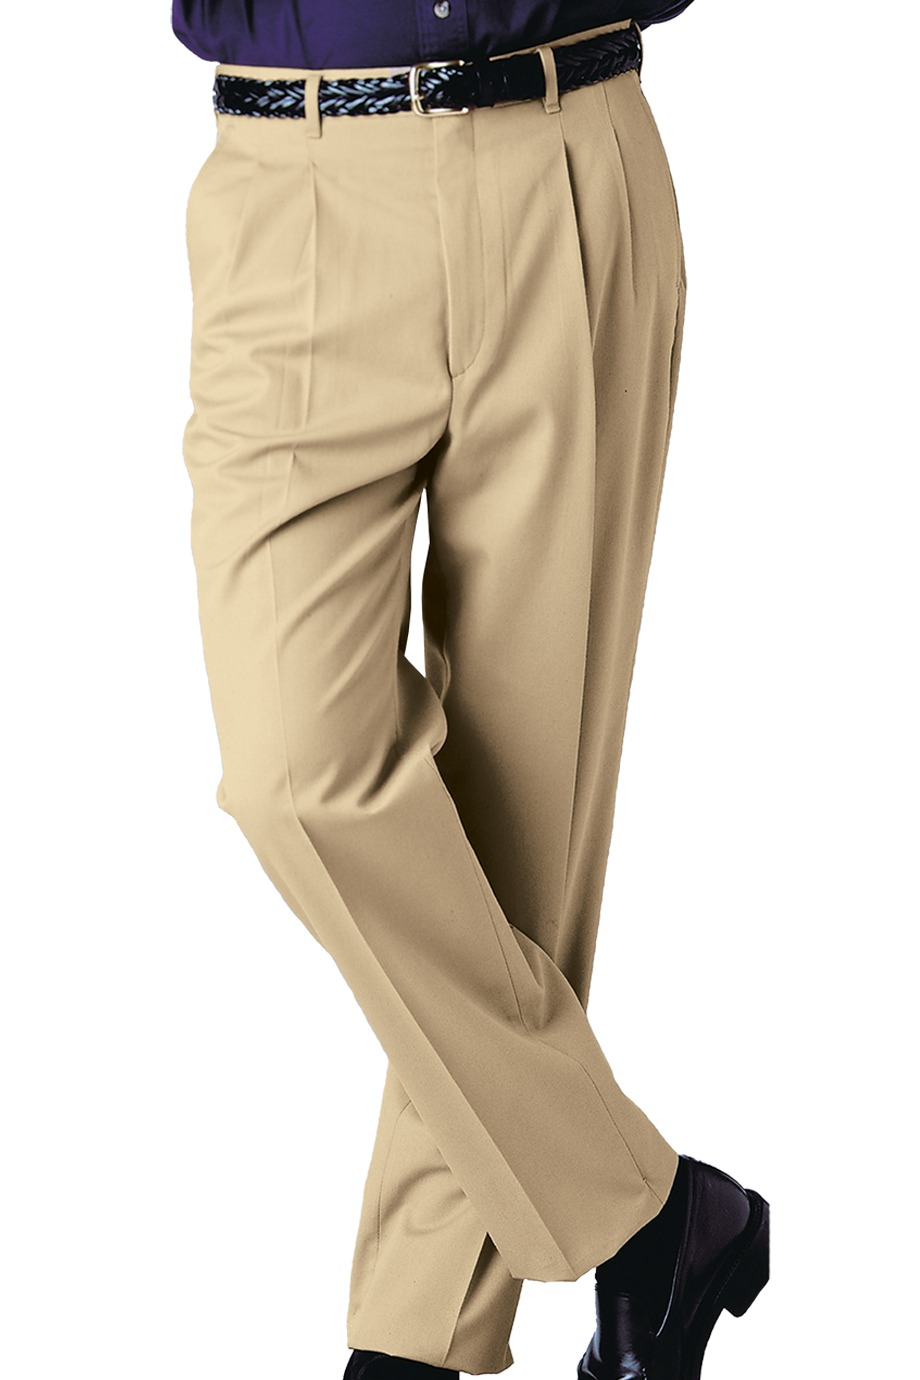 76dbc94719b Edwards Garment 2610 - Men s Business Casual Pleated Pant  25.28 ...